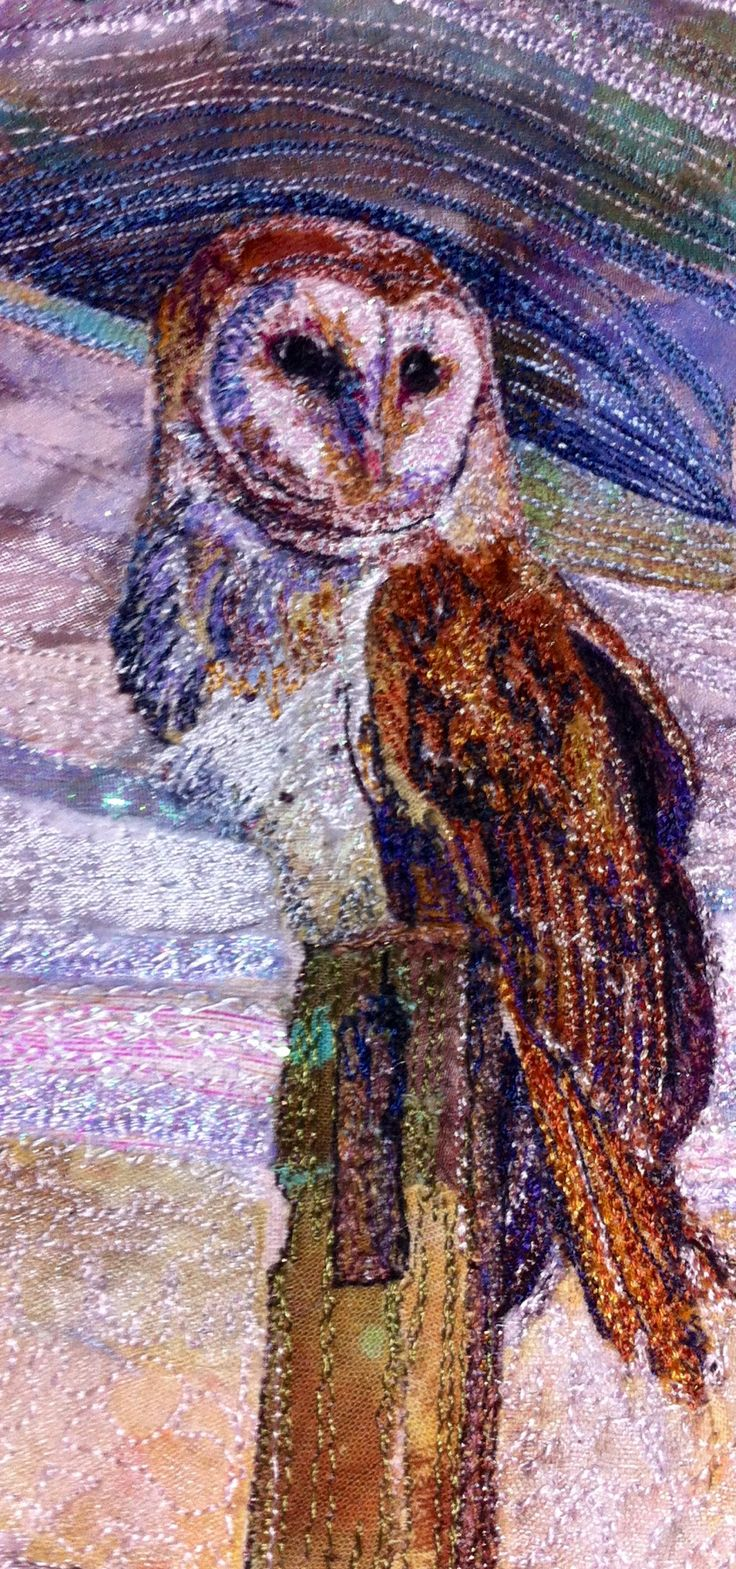 Waiting for supper. Machine embroidery by Rachel Wright. #barnowl #machineembroidery #textileart